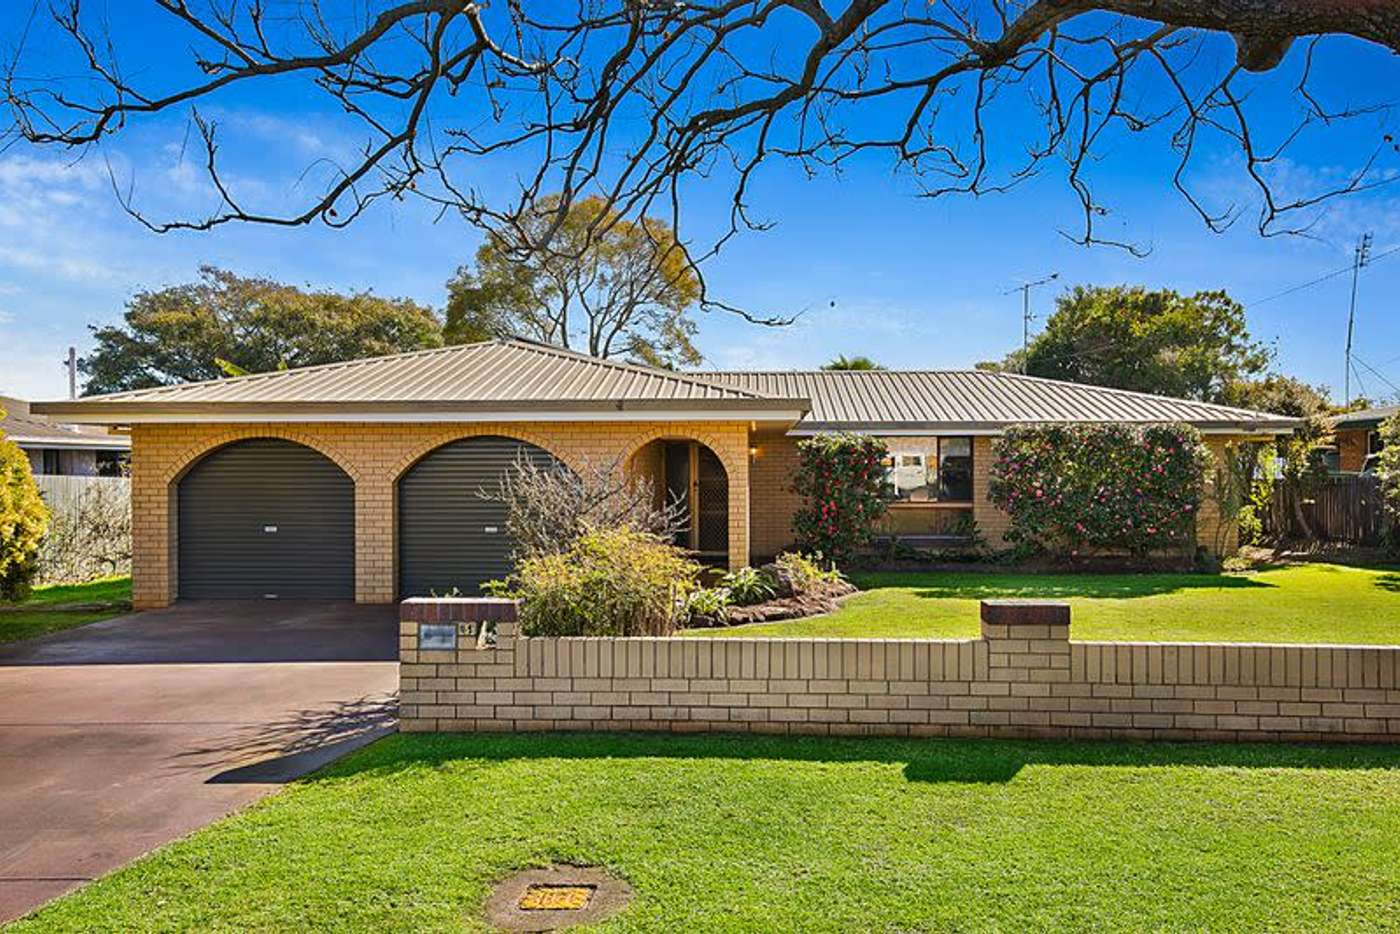 Main view of Homely house listing, 5 Lotus Crescent, Centenary Heights QLD 4350